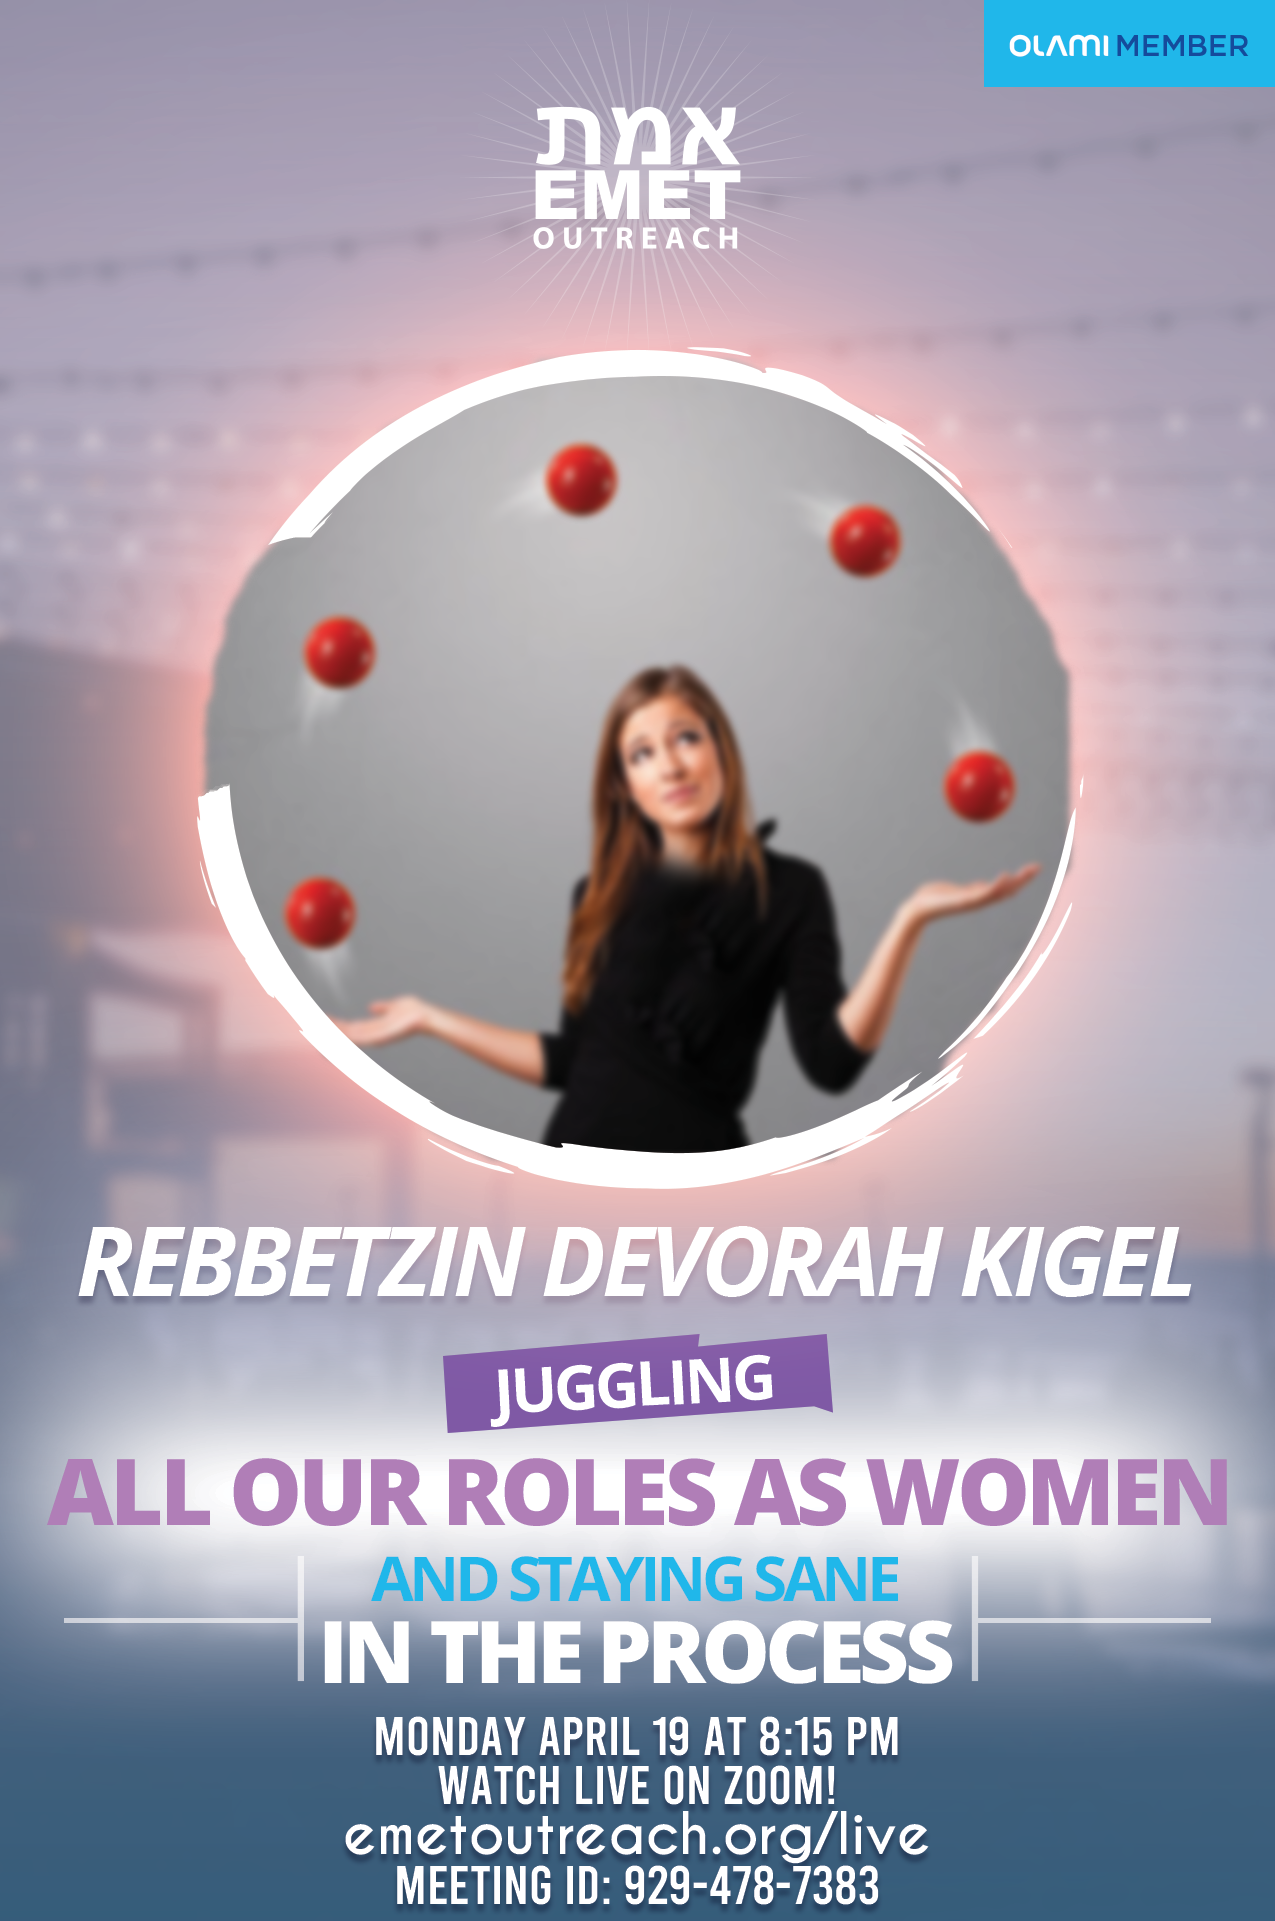 Reb Kigel Juggling Our Roles As Women 2021